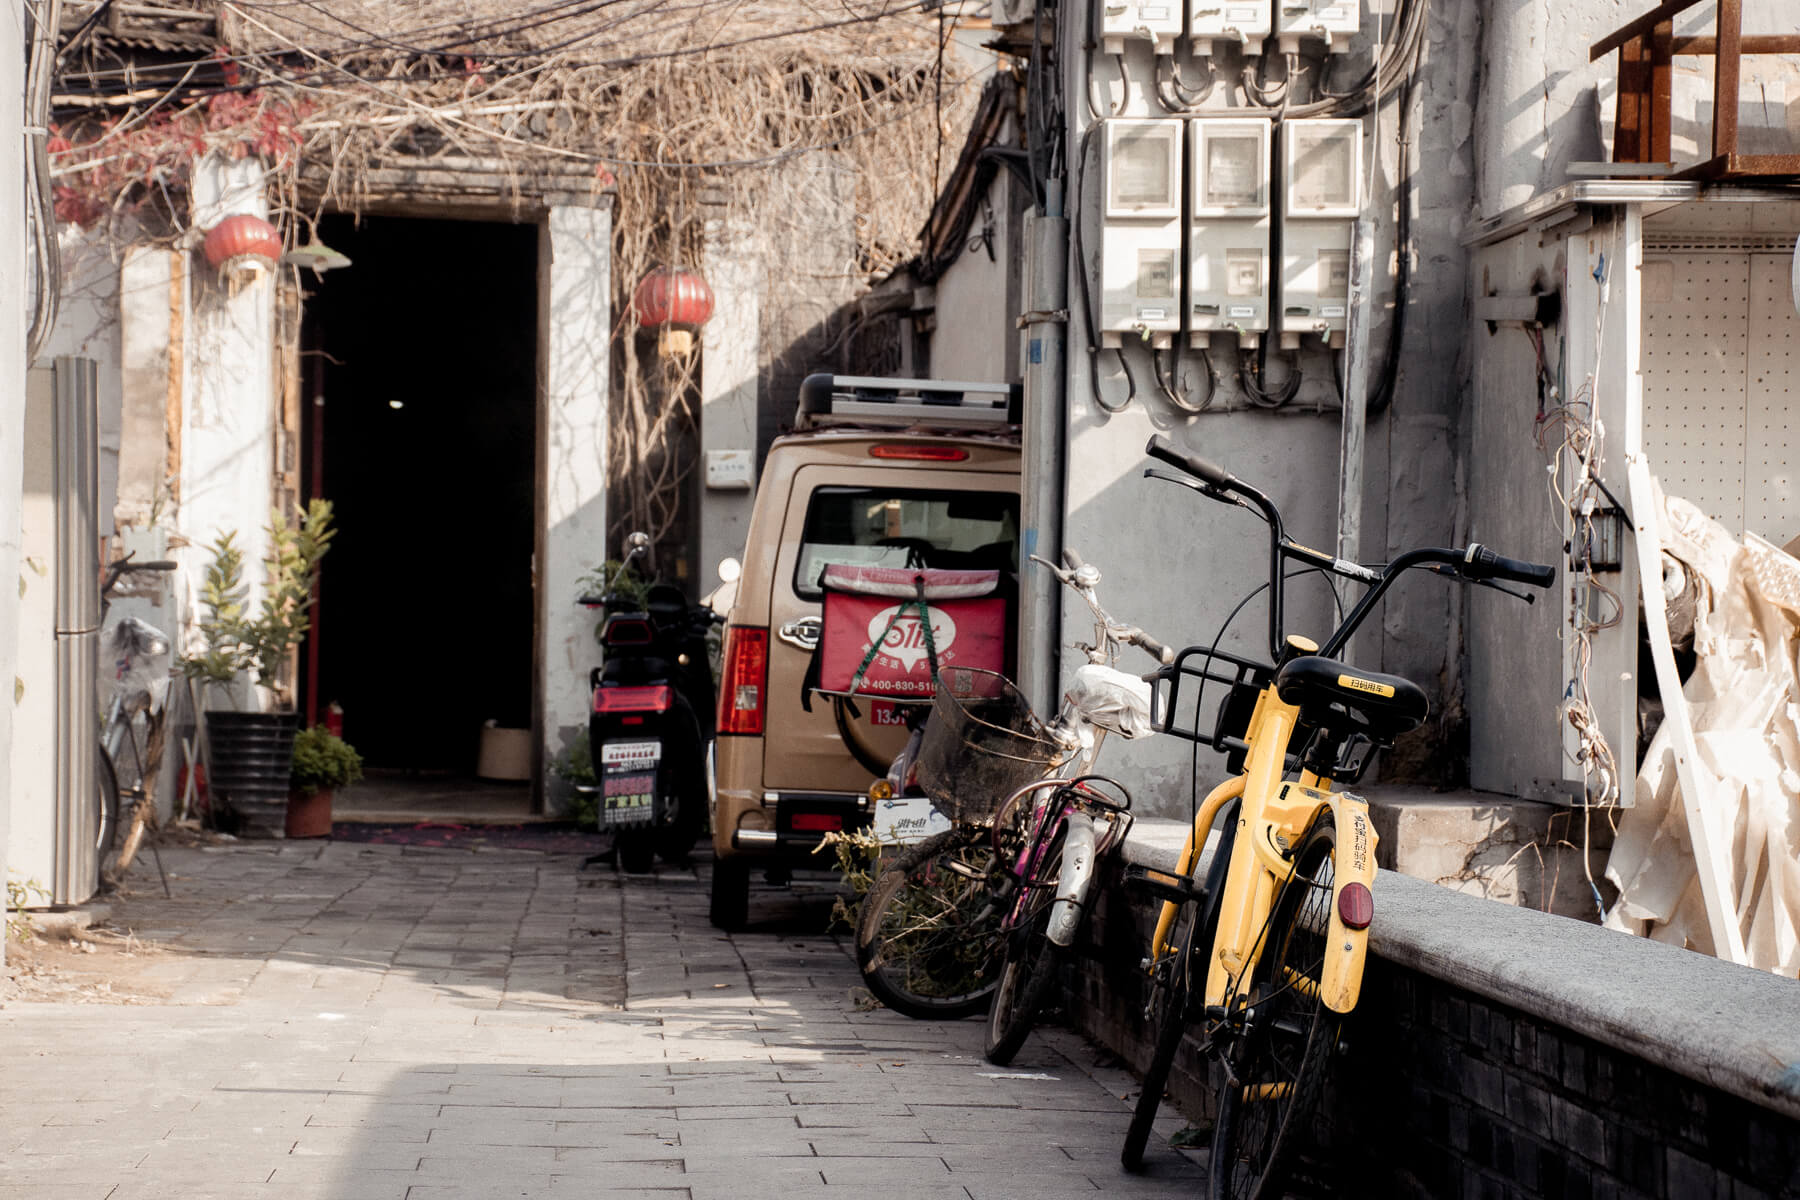 Bicycles and tuktuks leant up against a wall in Beijing's Hutong